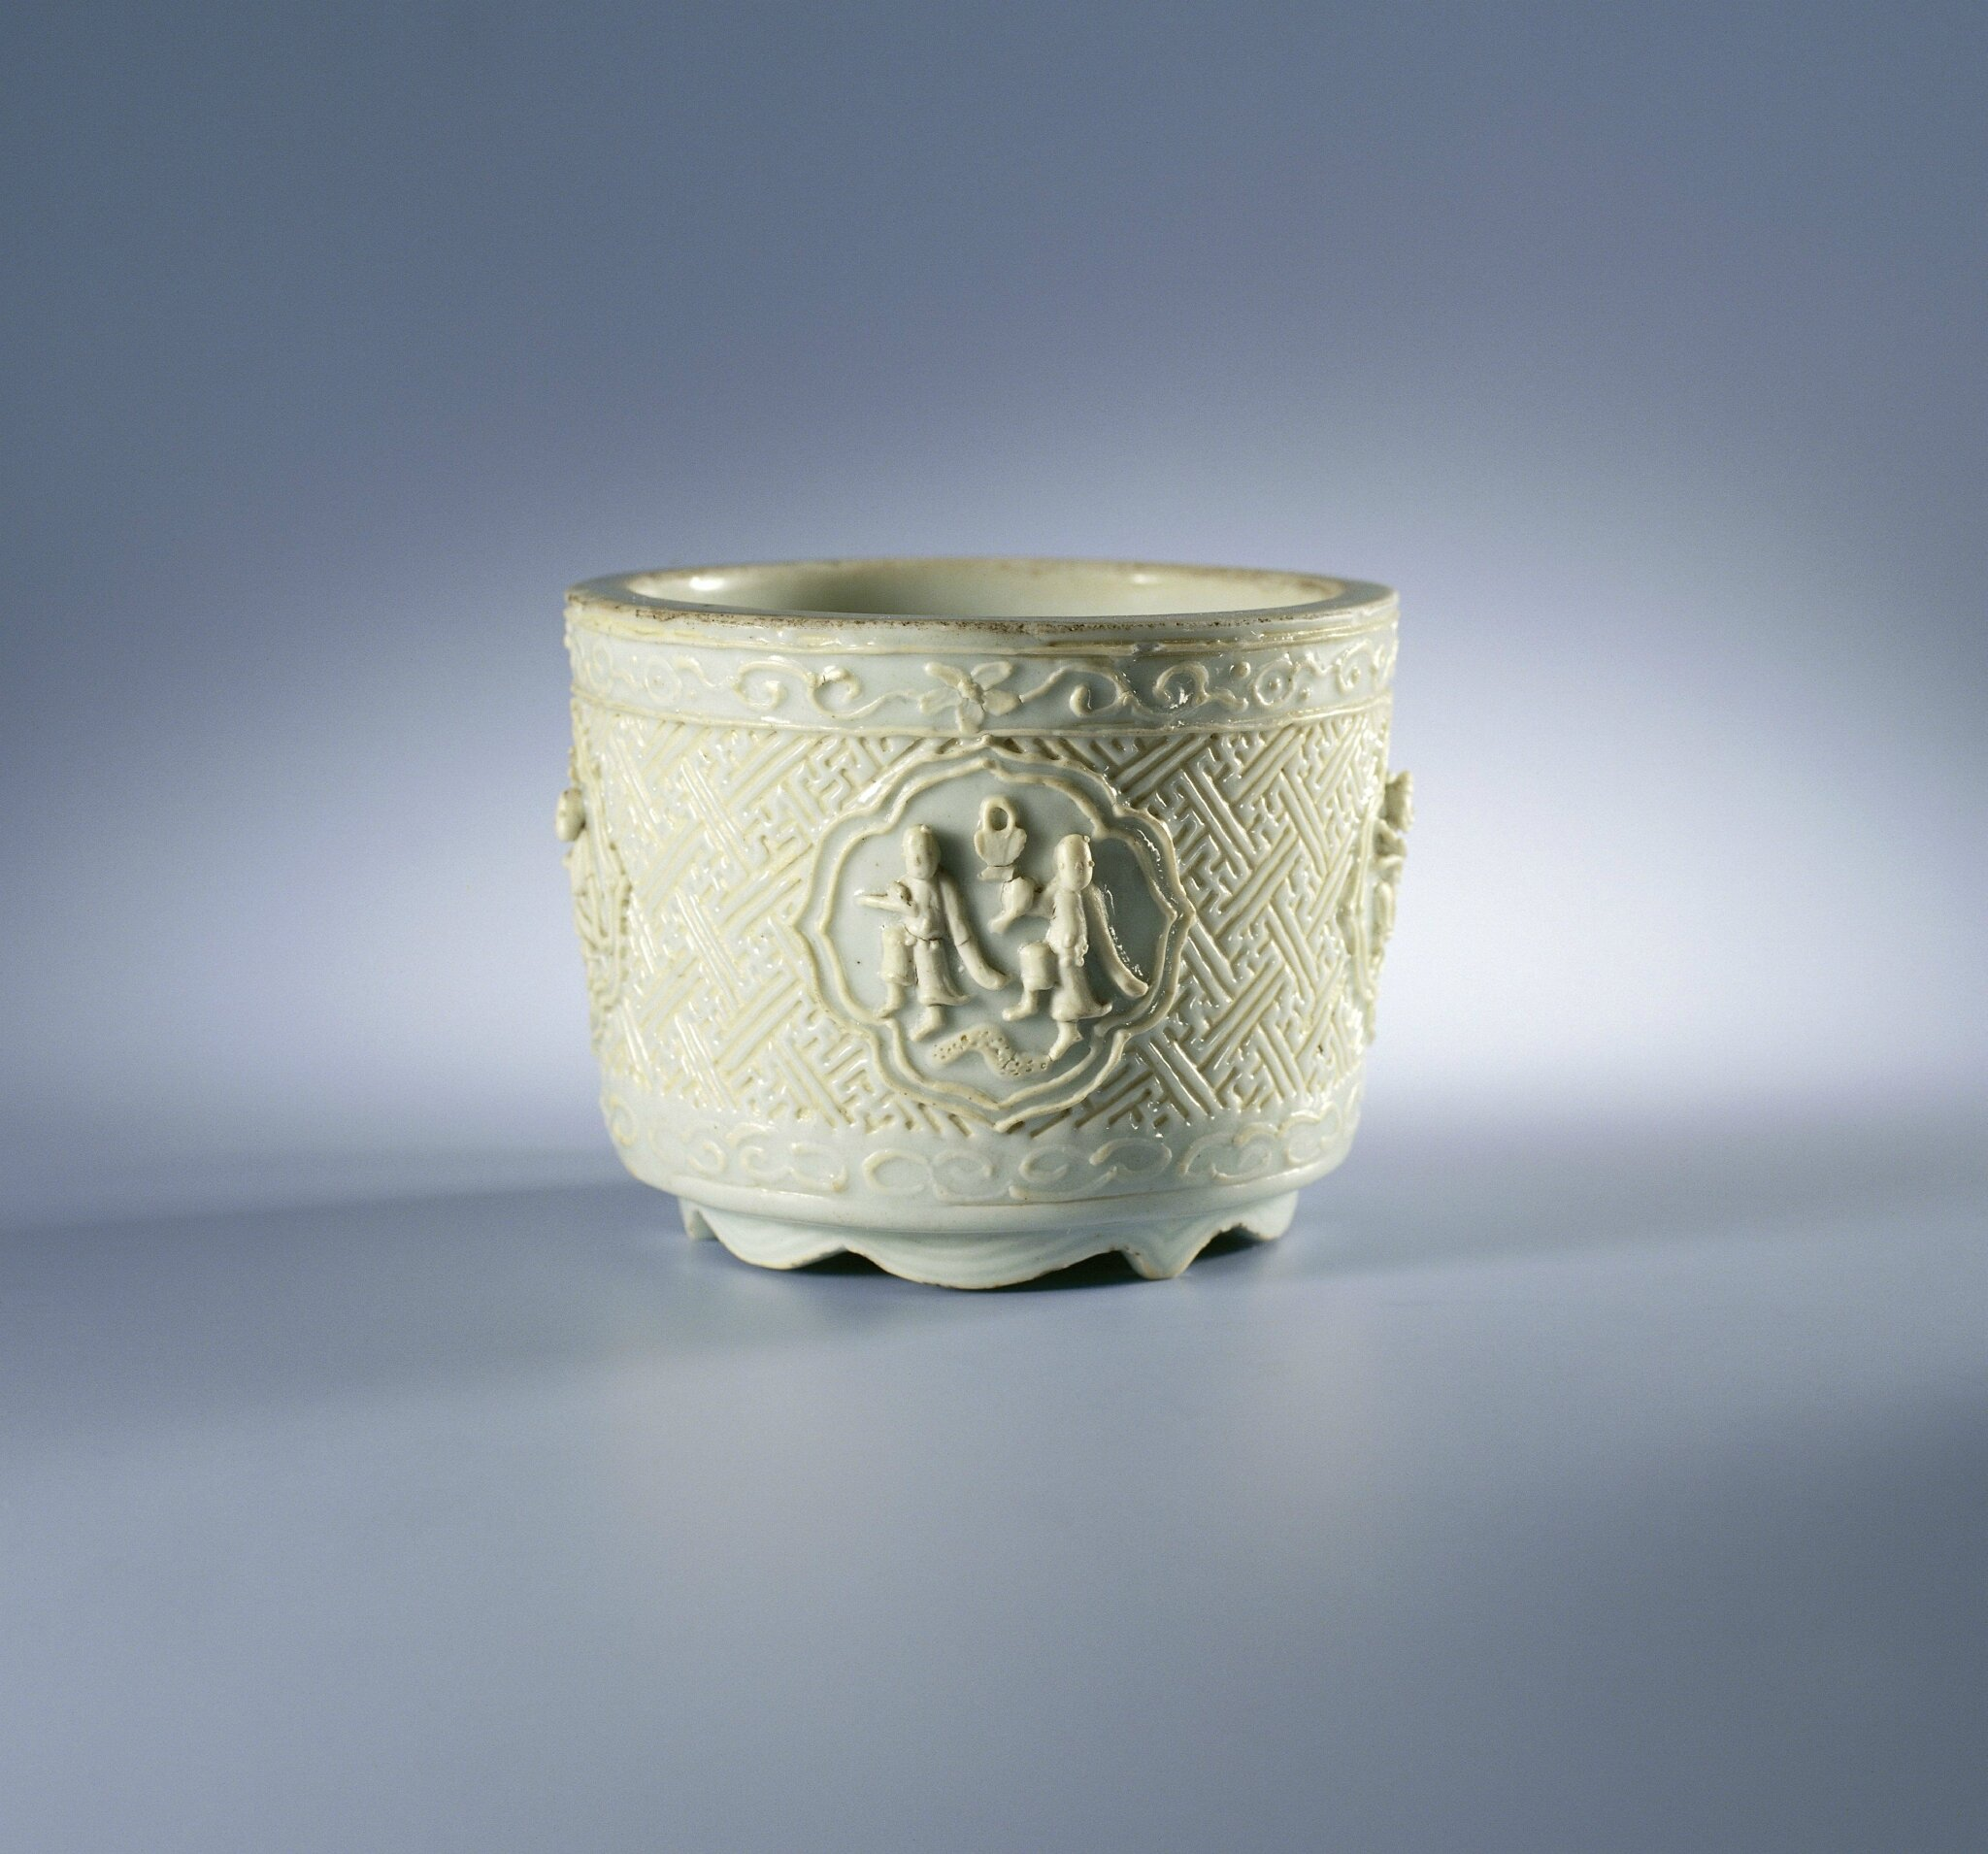 Incense burner with figures and swastika motifs in relief, Wanli period (1573-1619), c